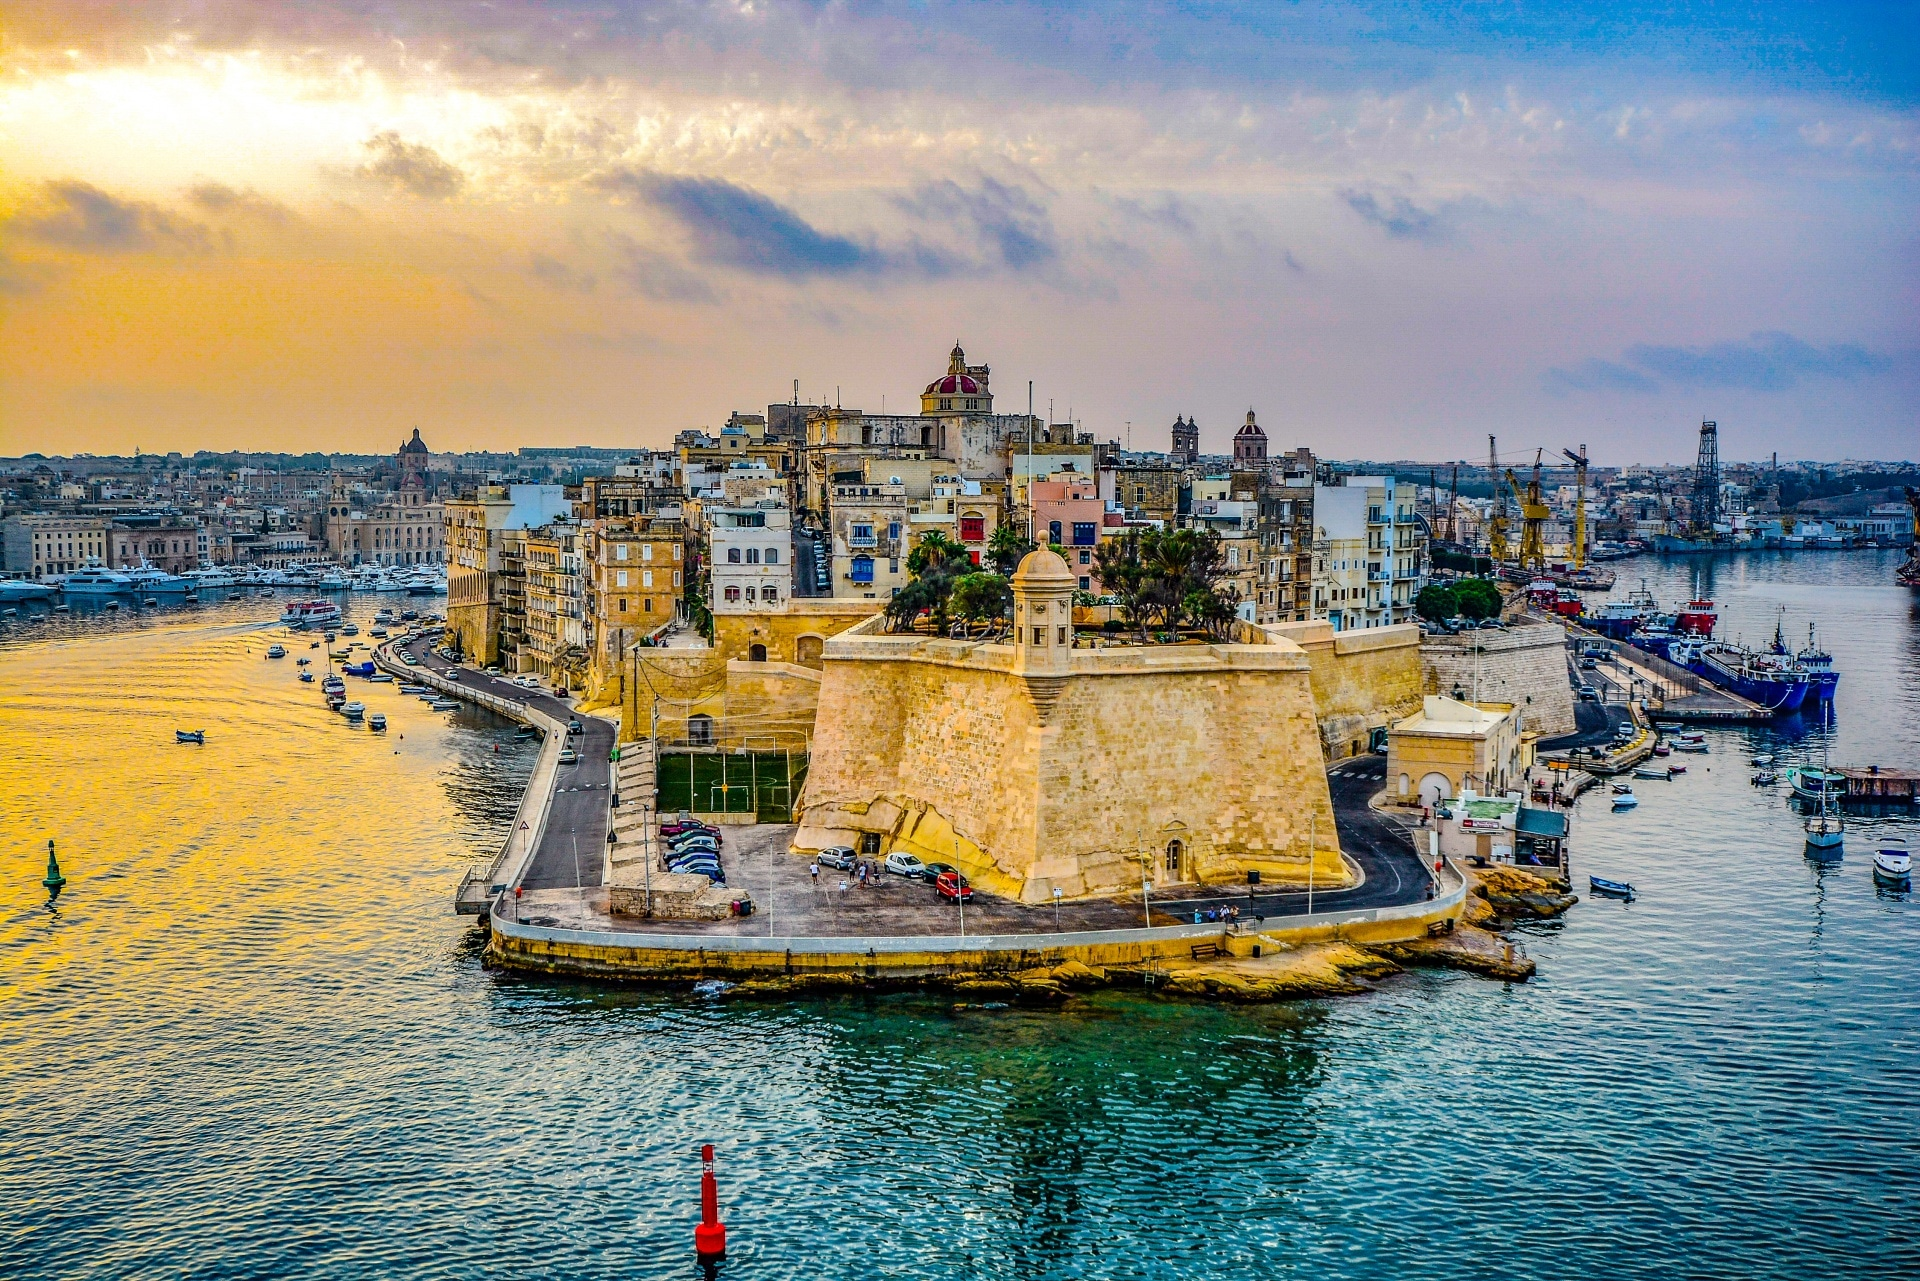 Malta Blockchain Summit postponed to February 2021 due to Covid-19